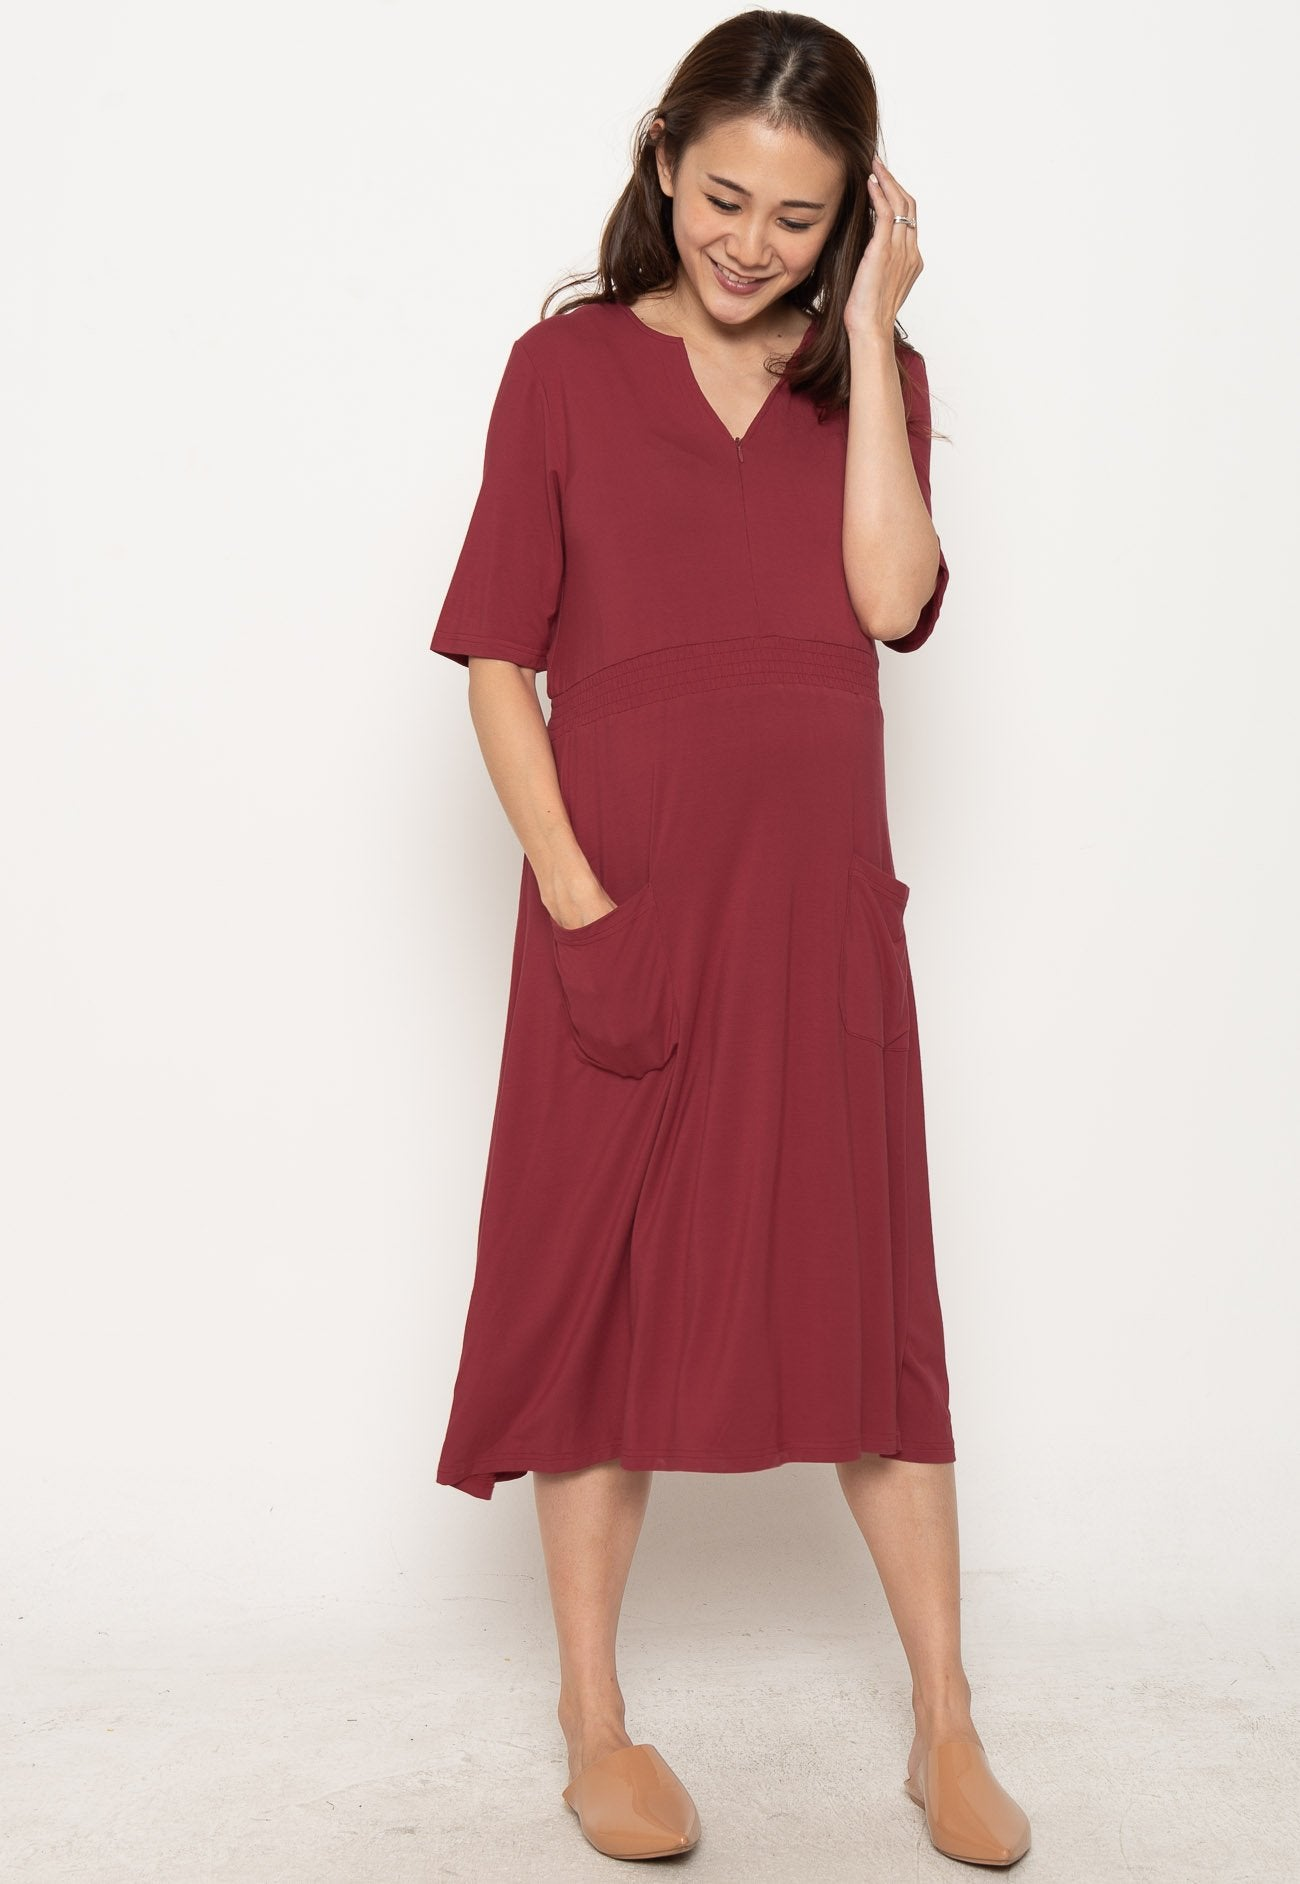 Mothercot Clio Zipped Down Nursing Dress in Red  by JumpEatCry - Maternity and nursing wear